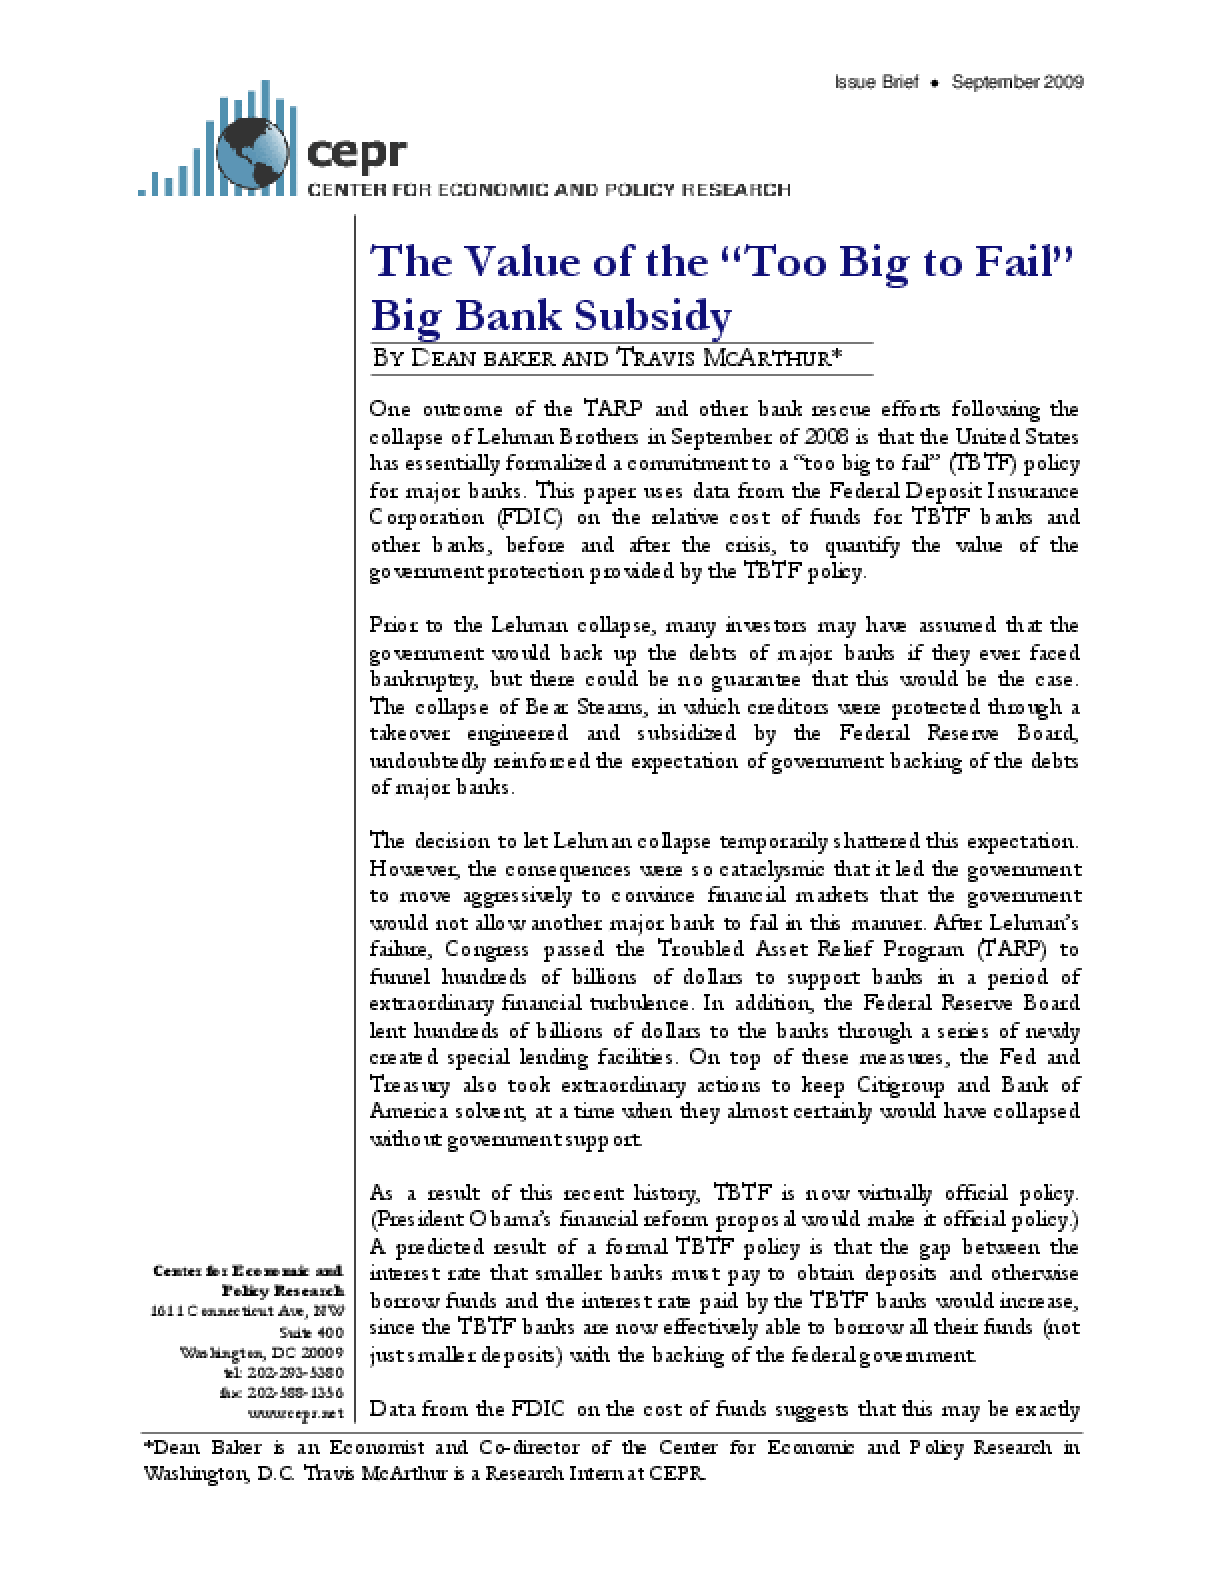 "The Value of the ""Too Big to Fail"" Big Bank Subsidy"